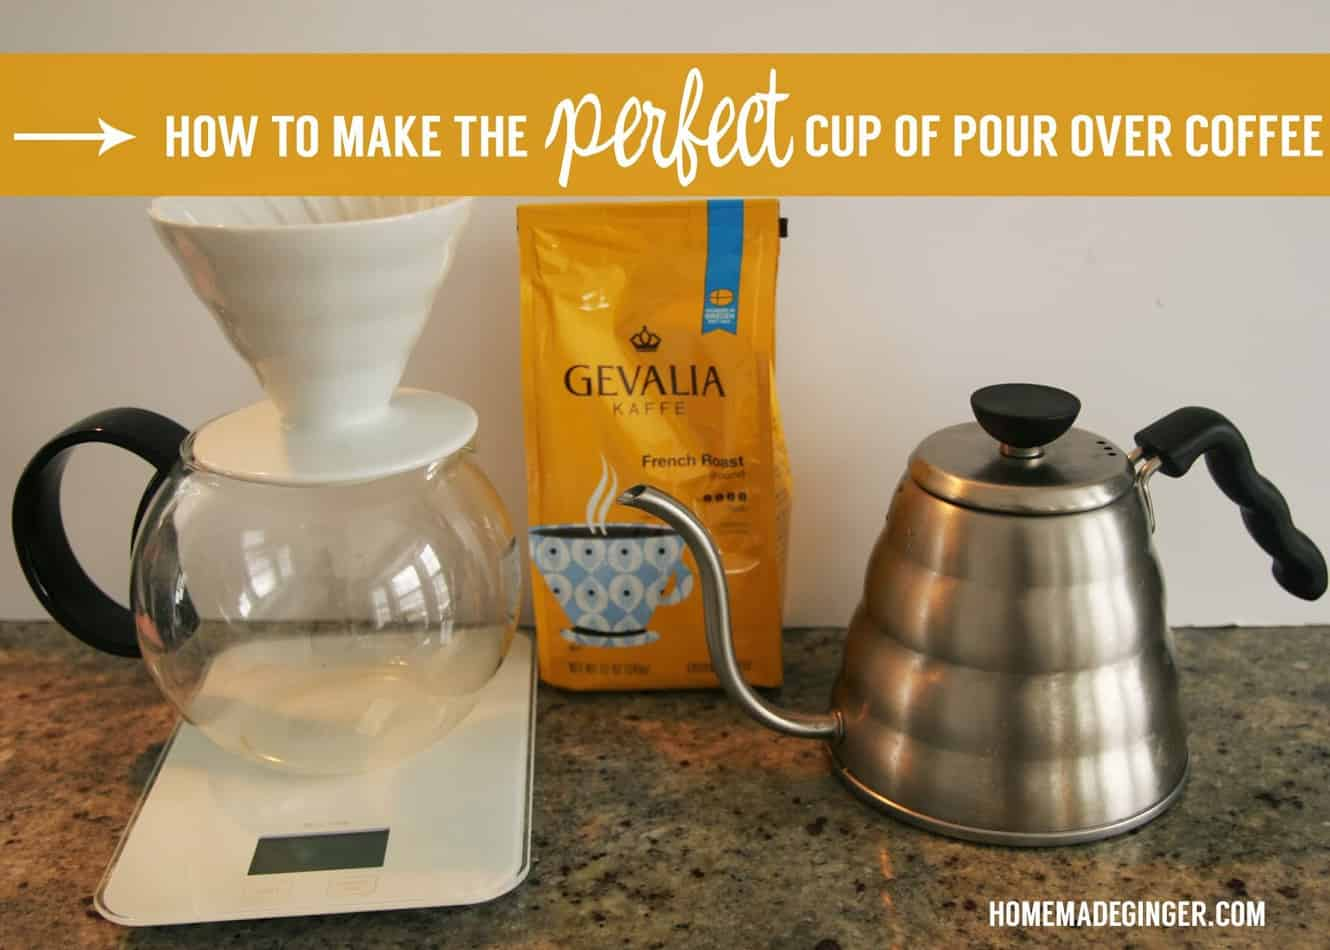 Pour Over Coffee Maker Tips : Tips for How to Make the Perfect Cup of Pour Over Gourmet Coffee - Homemade Ginger